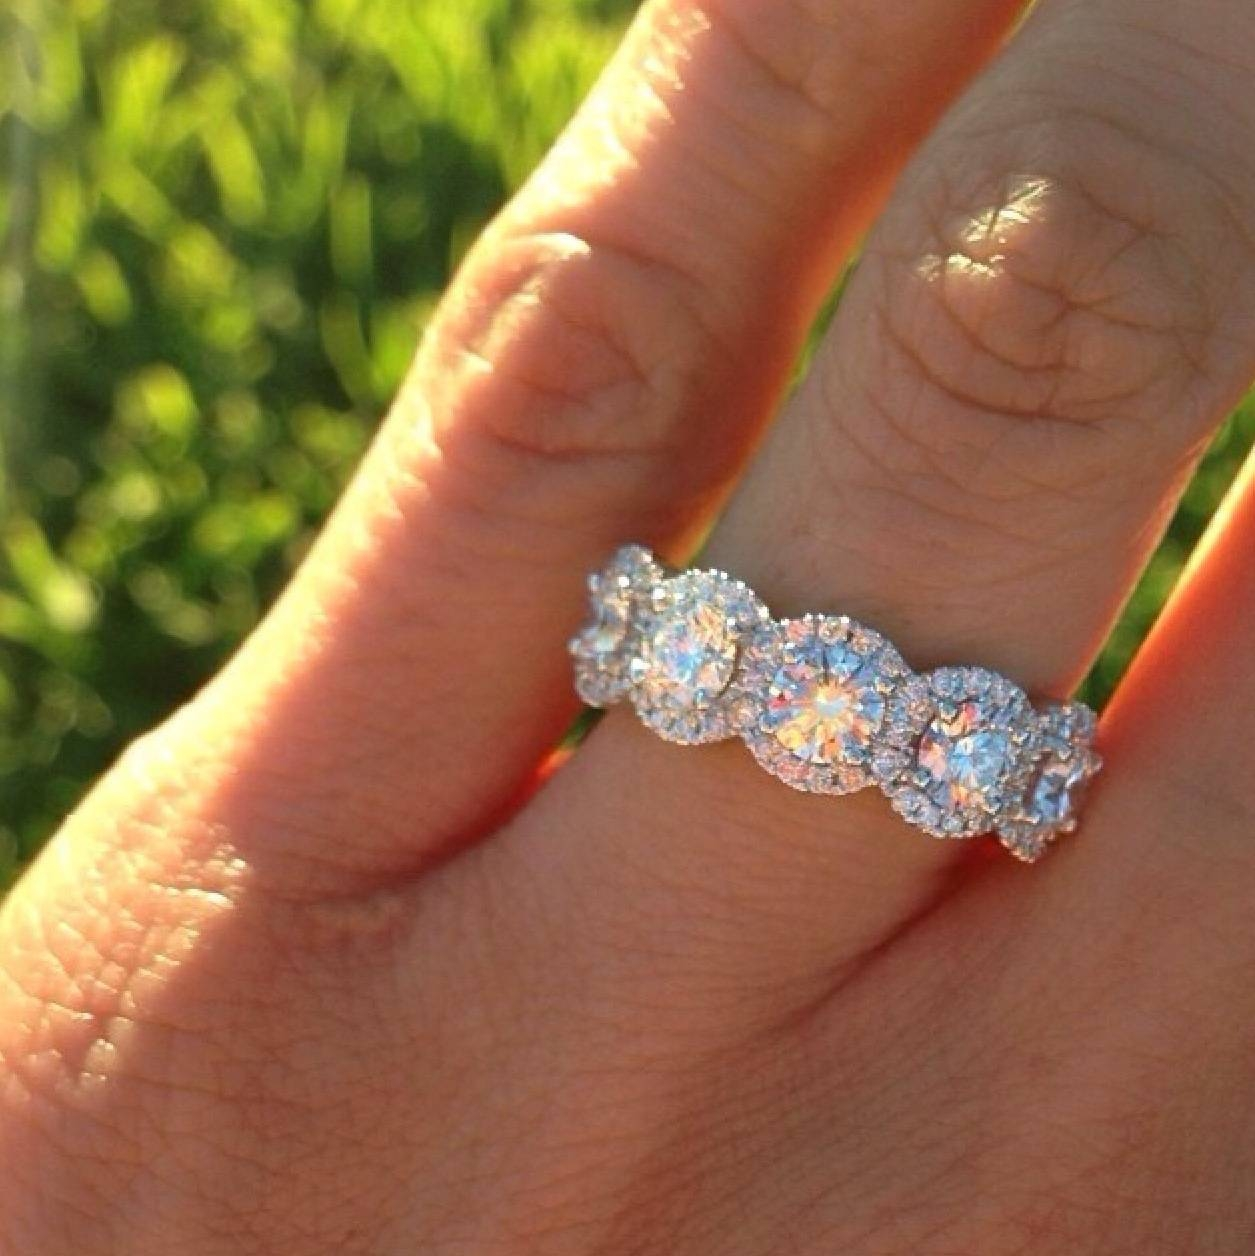 Ethical Engagement Rings and Wedding Bands by ashhilton